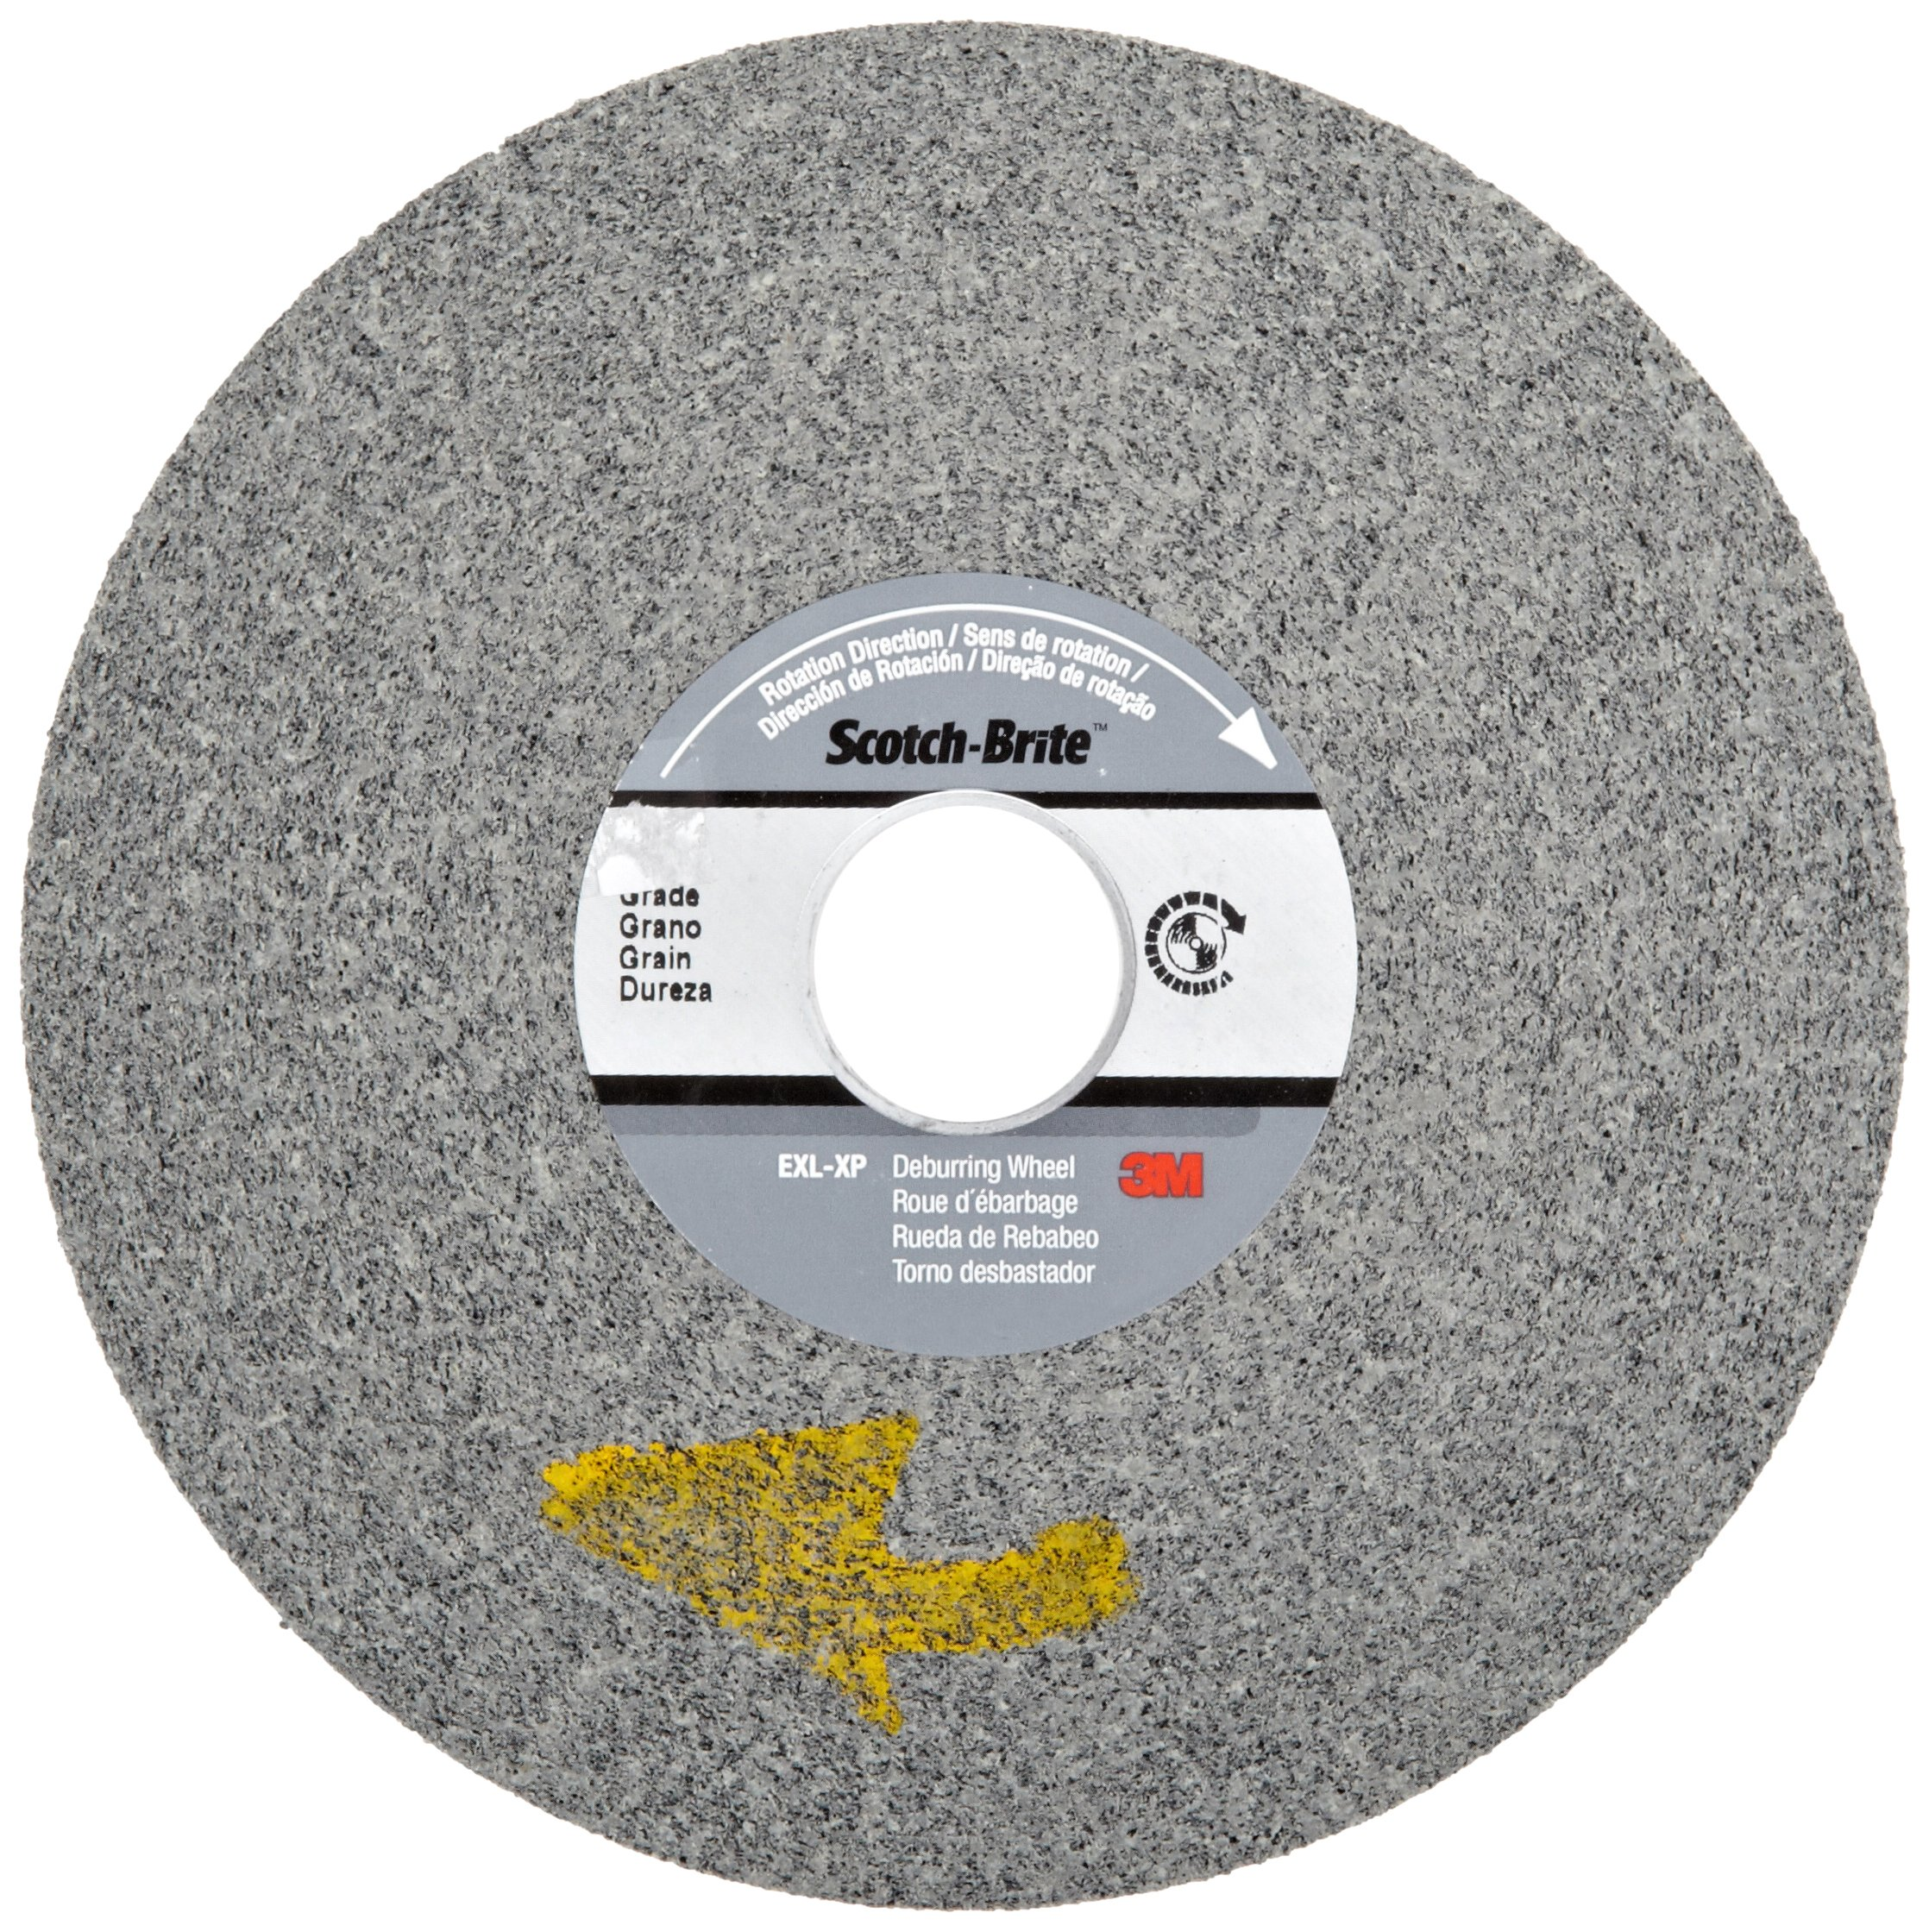 3M Scotch-Brite XP-WL Convolute Silicon Carbide Hard Deburring Wheel - Fine Grade - Arbor Attachment - 6 in Dia 1 in Center Hole - Thickness 1/2 in - 6000 Max RPM - 60452 [PRICE is per WHEEL]